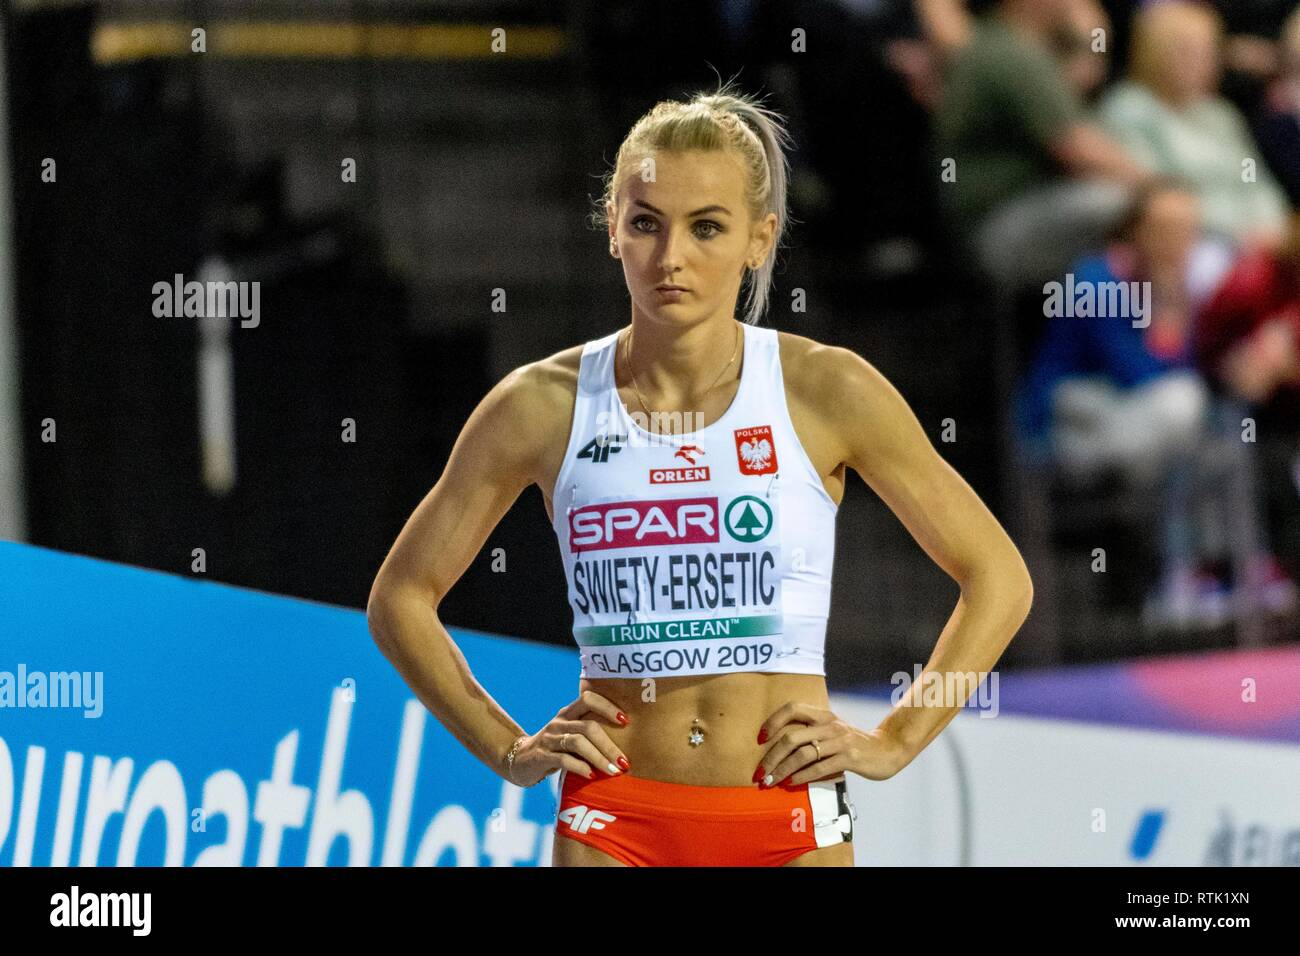 Glasgow, UK. 01st Mar, 2019. SWIETY-ERSETIC Justyna POL competing in the 400m Women event during day ONE of the European Athletics Indoor Championships 2019 at Emirates Arena in Glasgow, Scotland, United Kingdom. 1.03.2019 Credit: Cronos/Alamy Live News - Stock Image